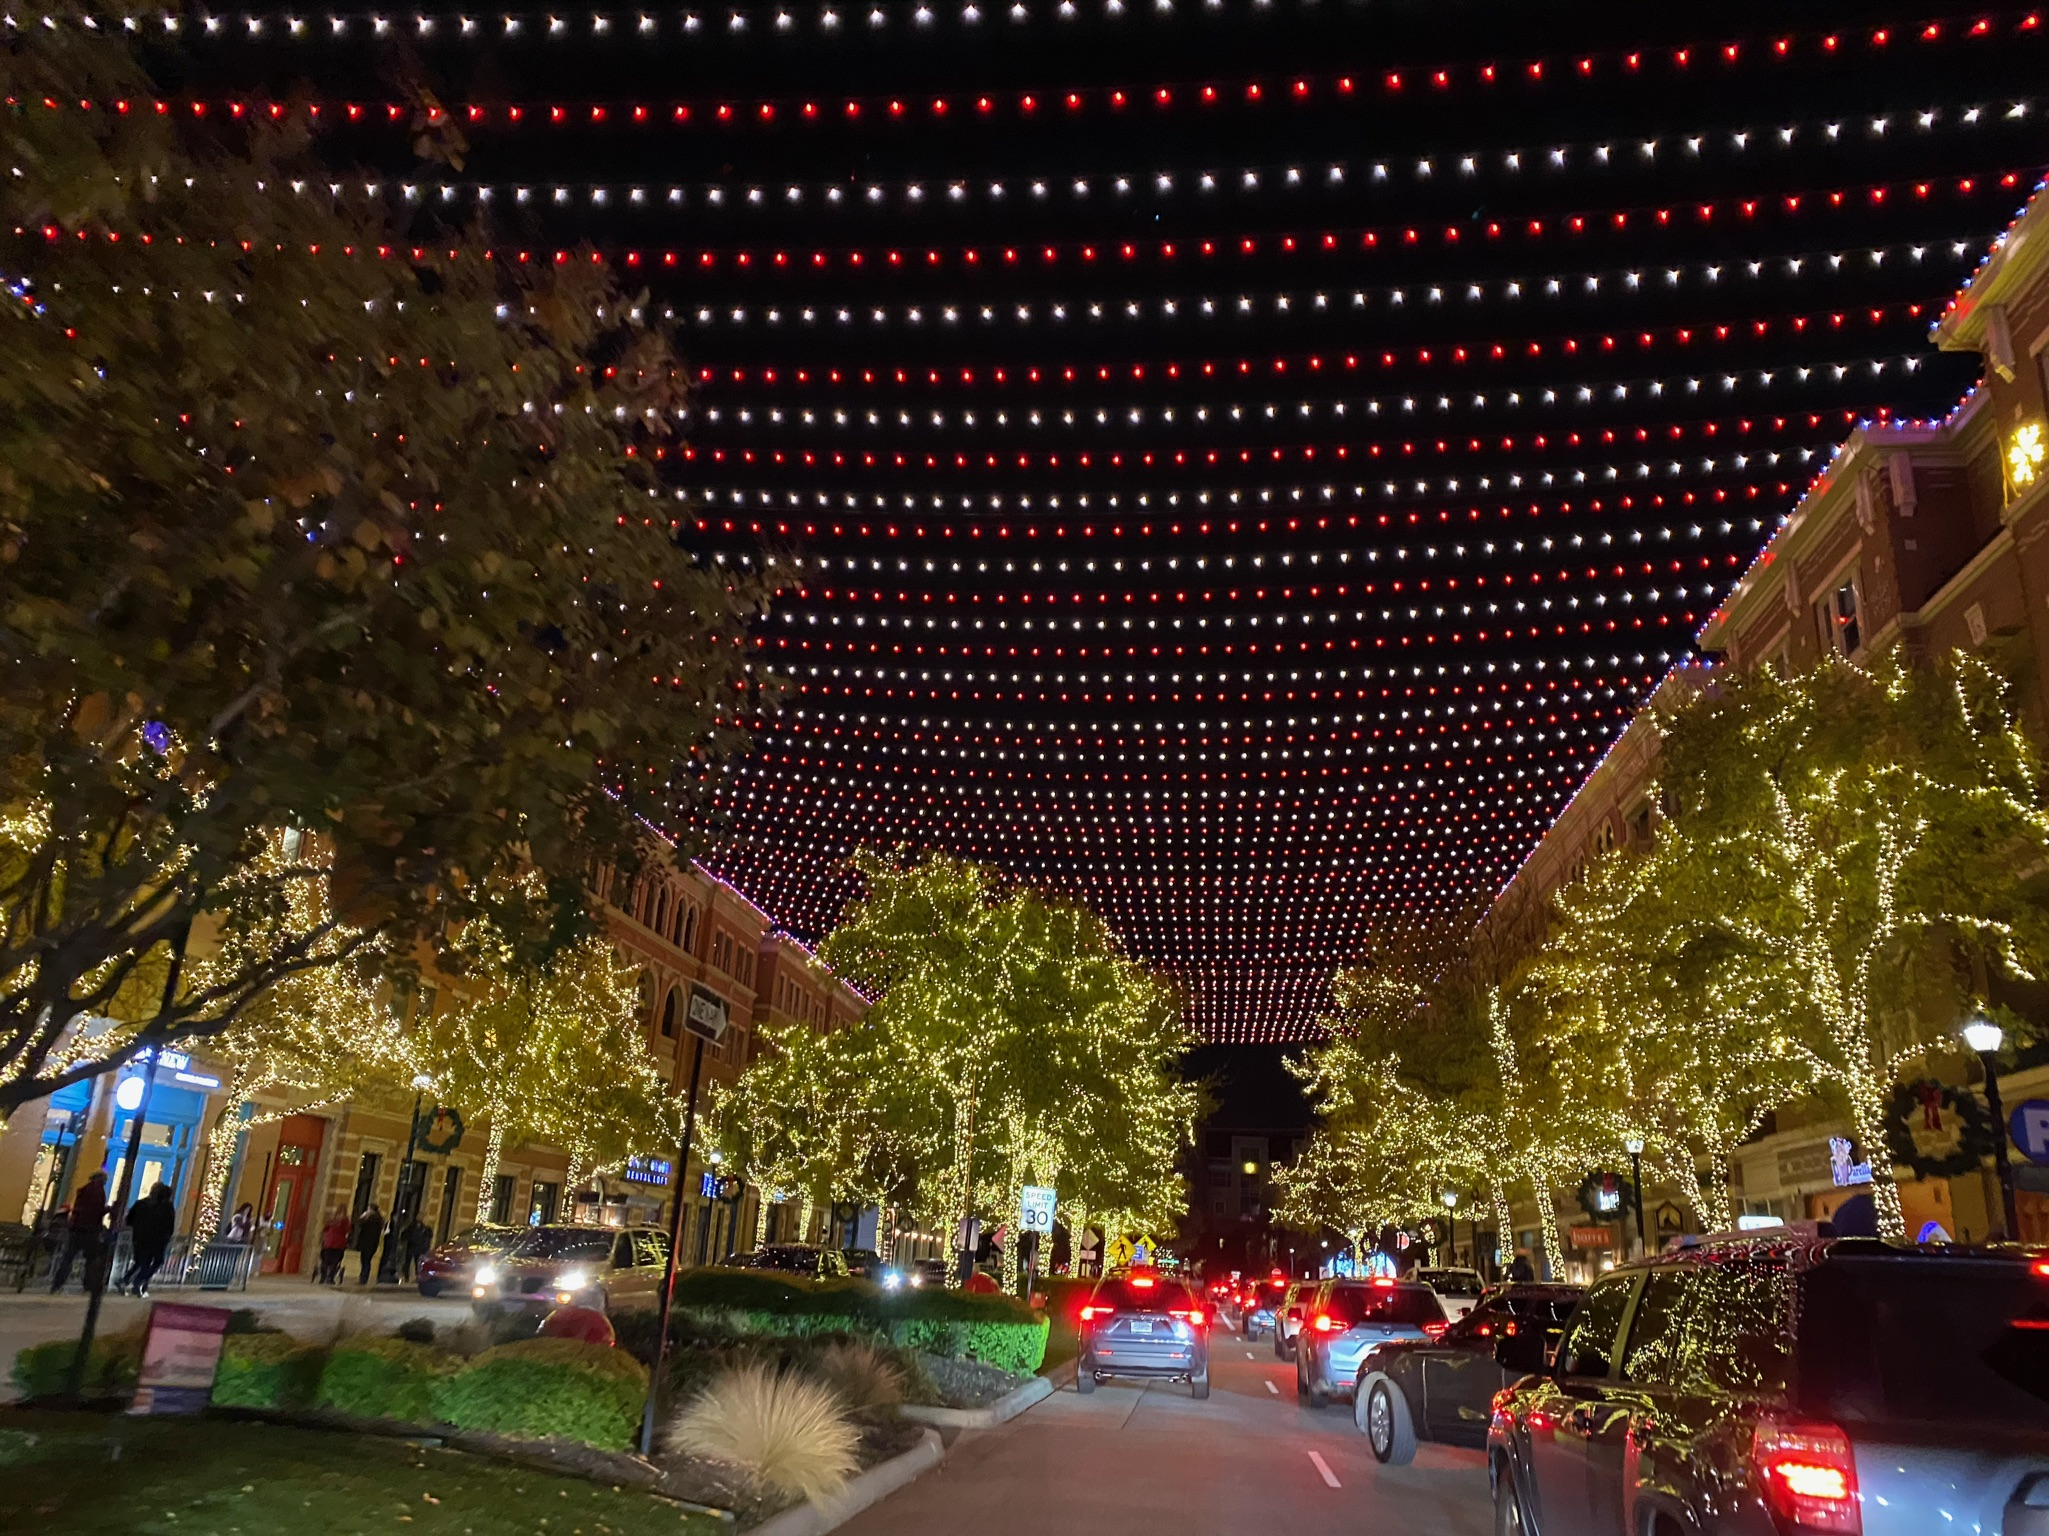 Dfw Christmas Music Radio Stations 2021 2020 Holiday Events In Collin County For Socially Distant Winter Fun Local Profile